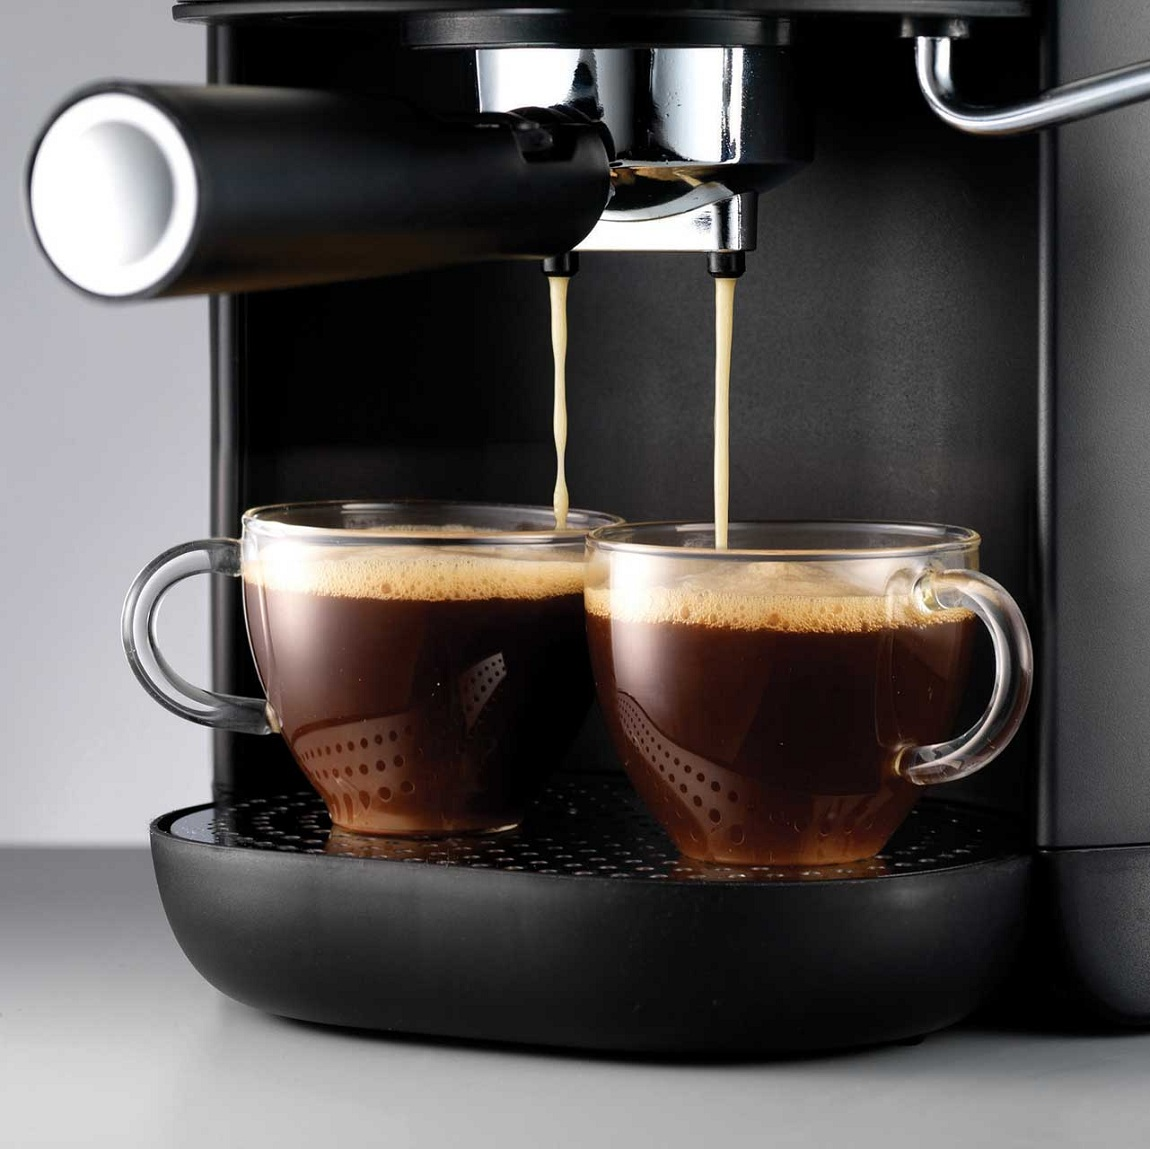 Morphy Richards Coffee Maker With Frother : Morphy Richards 172003 Espresso Coffee Maker Machine Cappuccino Frother Black eBay